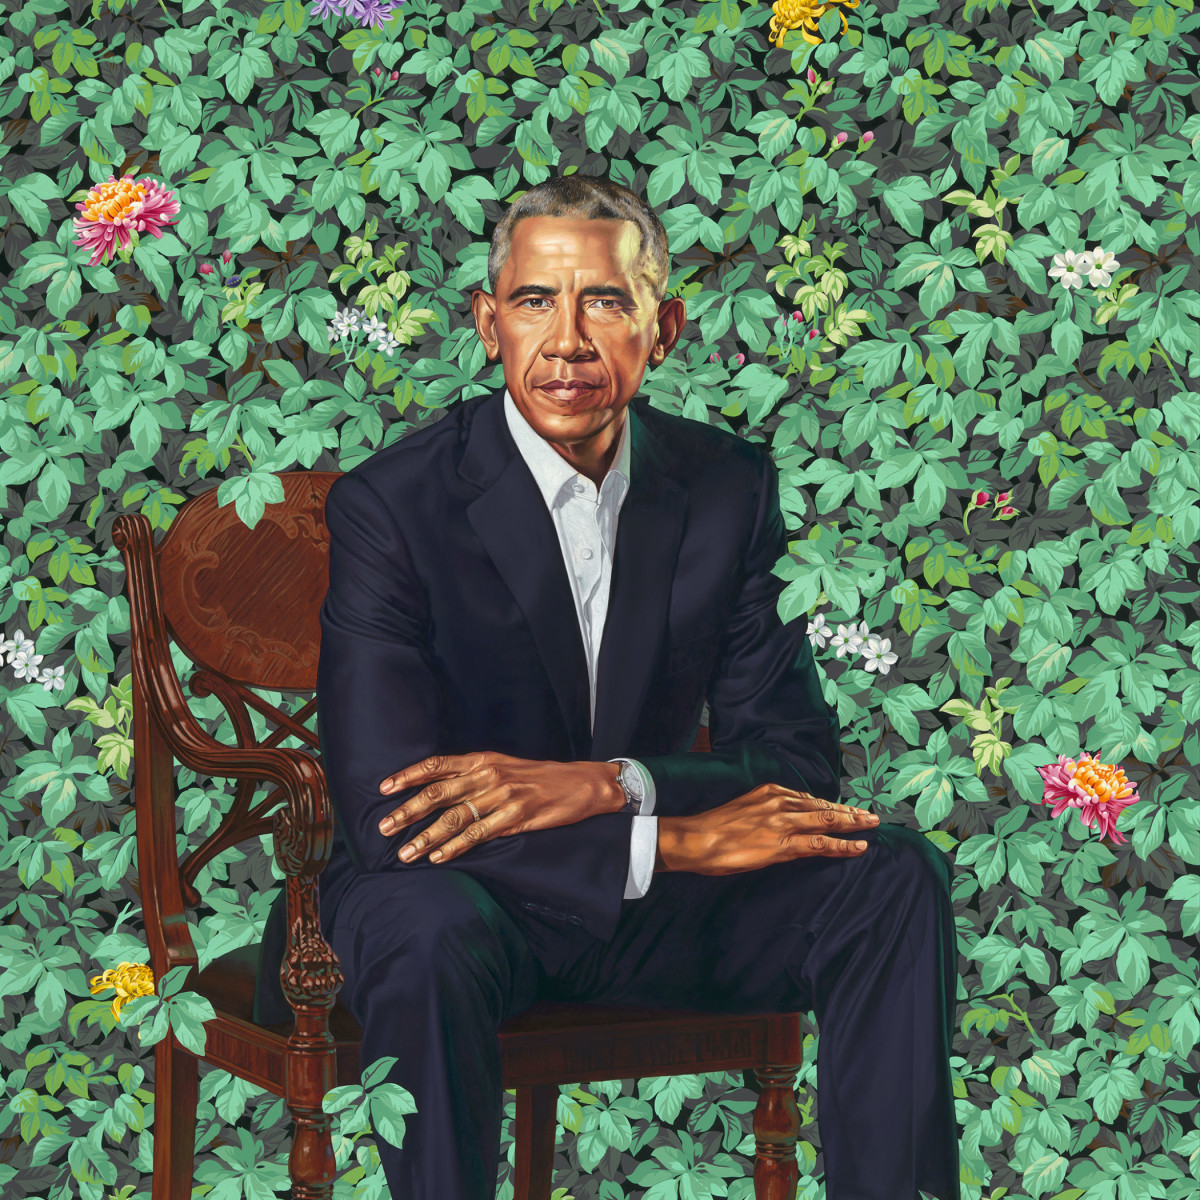 Portraits of Barack, Michelle Obama to travel on a five-city tour